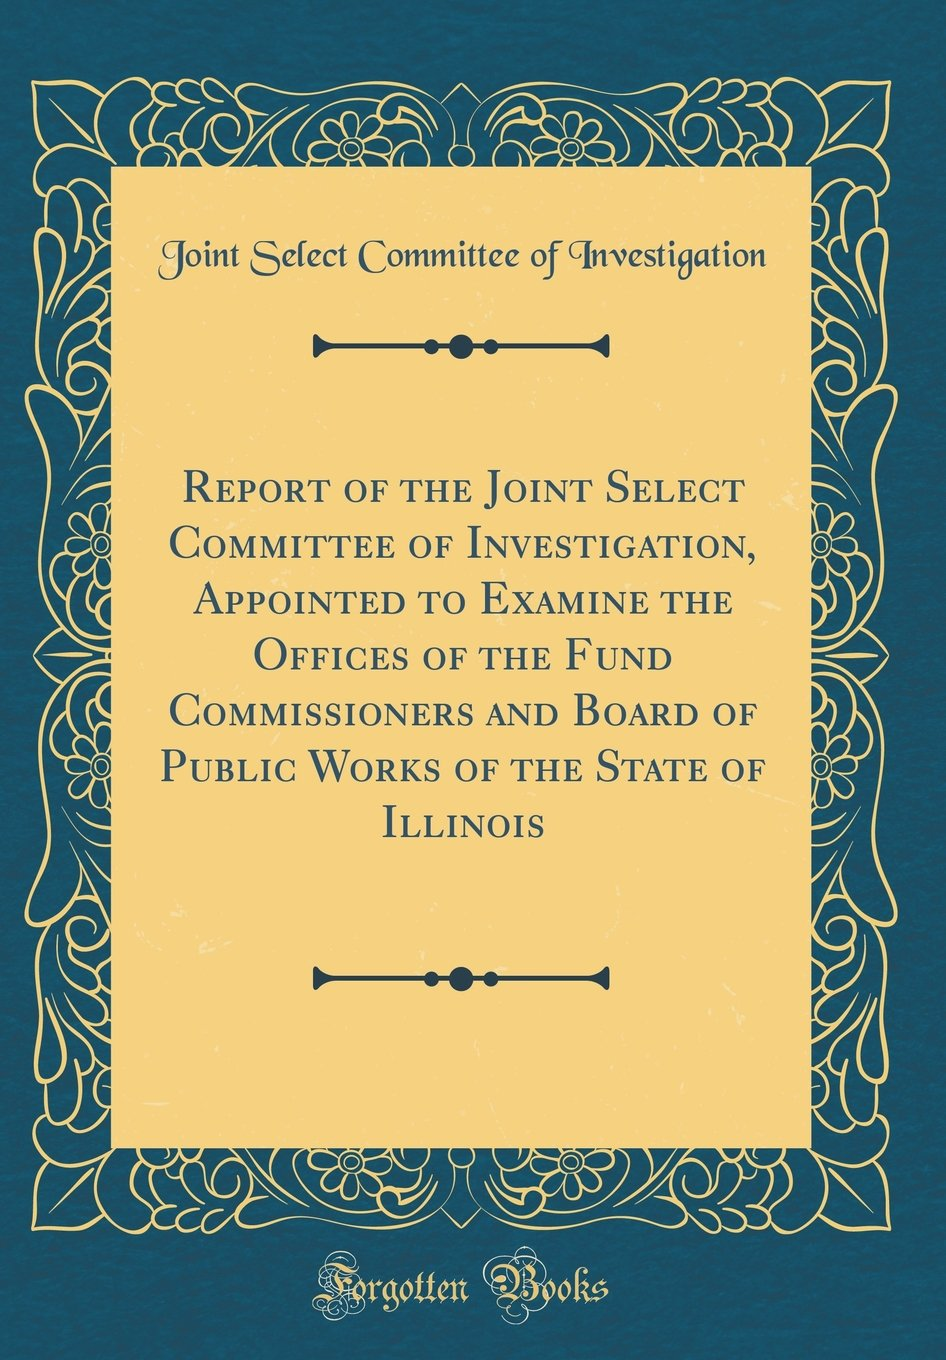 Read Online Report of the Joint Select Committee of Investigation, Appointed to Examine the Offices of the Fund Commissioners and Board of Public Works of the State of Illinois (Classic Reprint) pdf